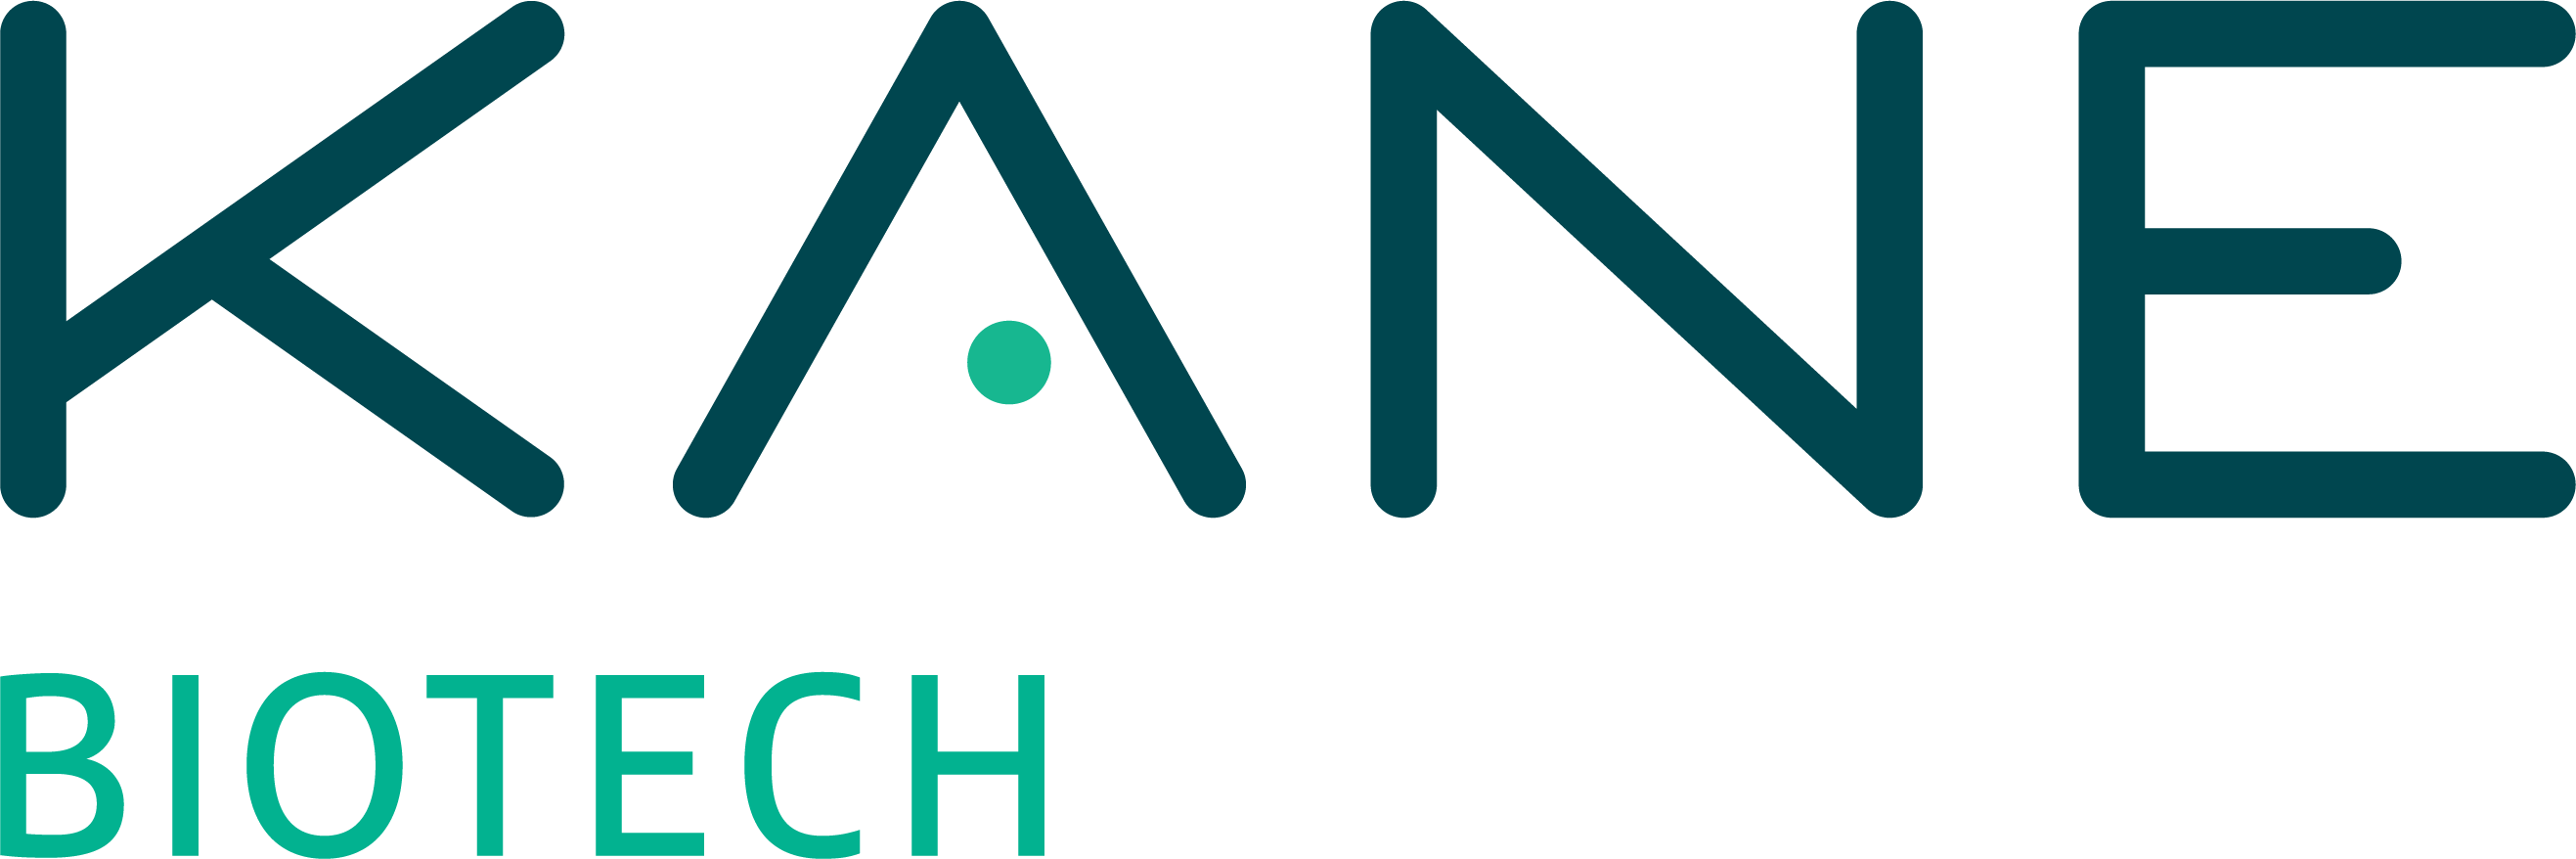 Kane Biotech and Dechra Veterinary Products Expand Exclusive License and Distribution Agreement to Include South America